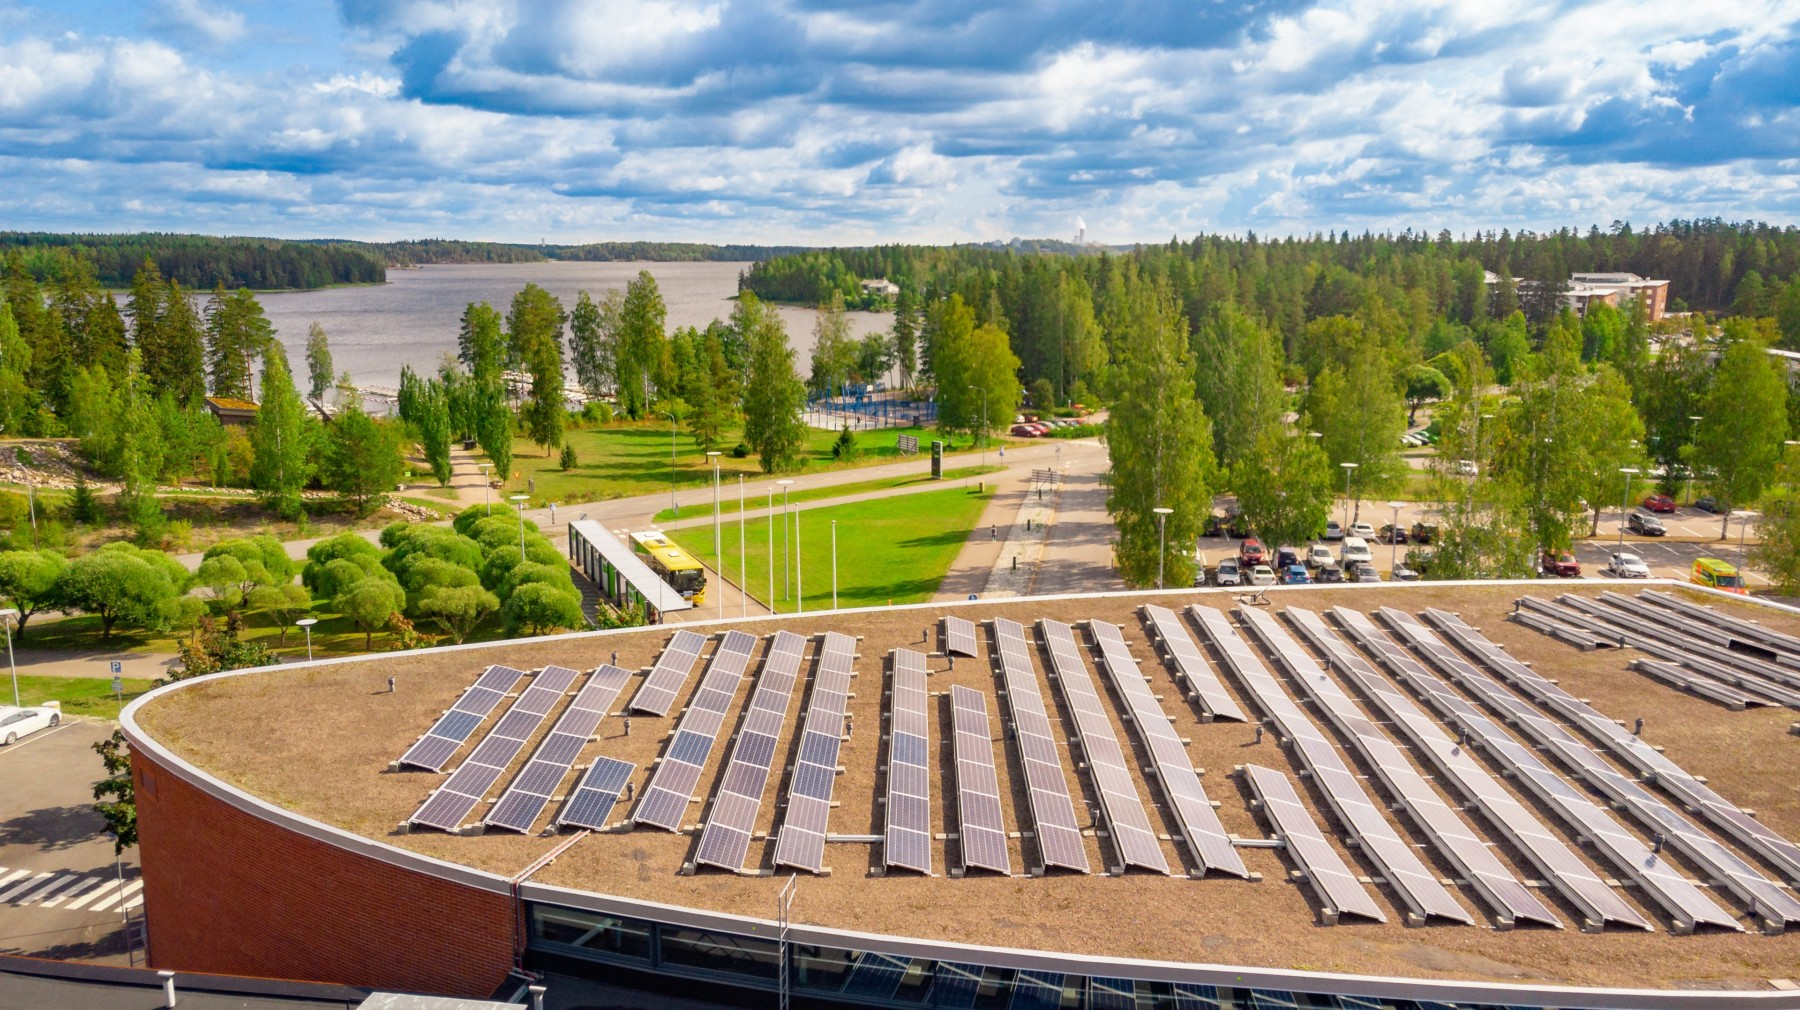 Solar panels line the roof a university building, with trees and a lake in the background.